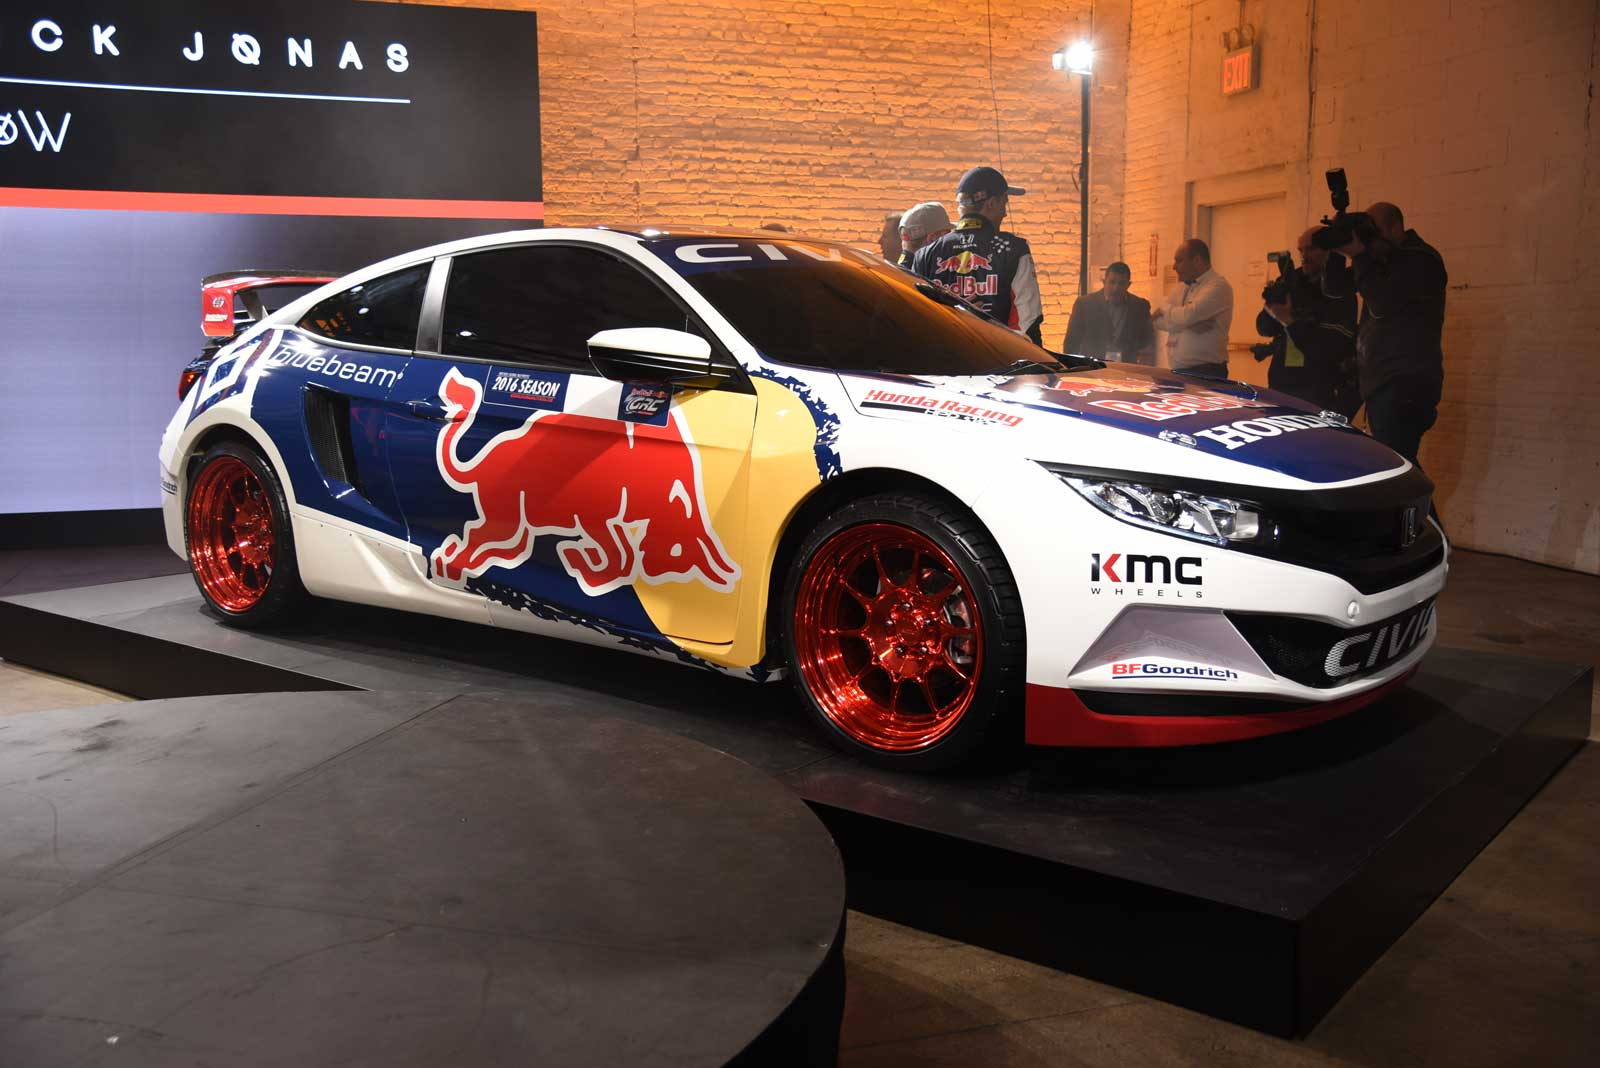 2016 honda civic coupe red bull global rallycross race car debuts in - 2016 Honda Civic Coupe Set To Compete In Global Rallycross With